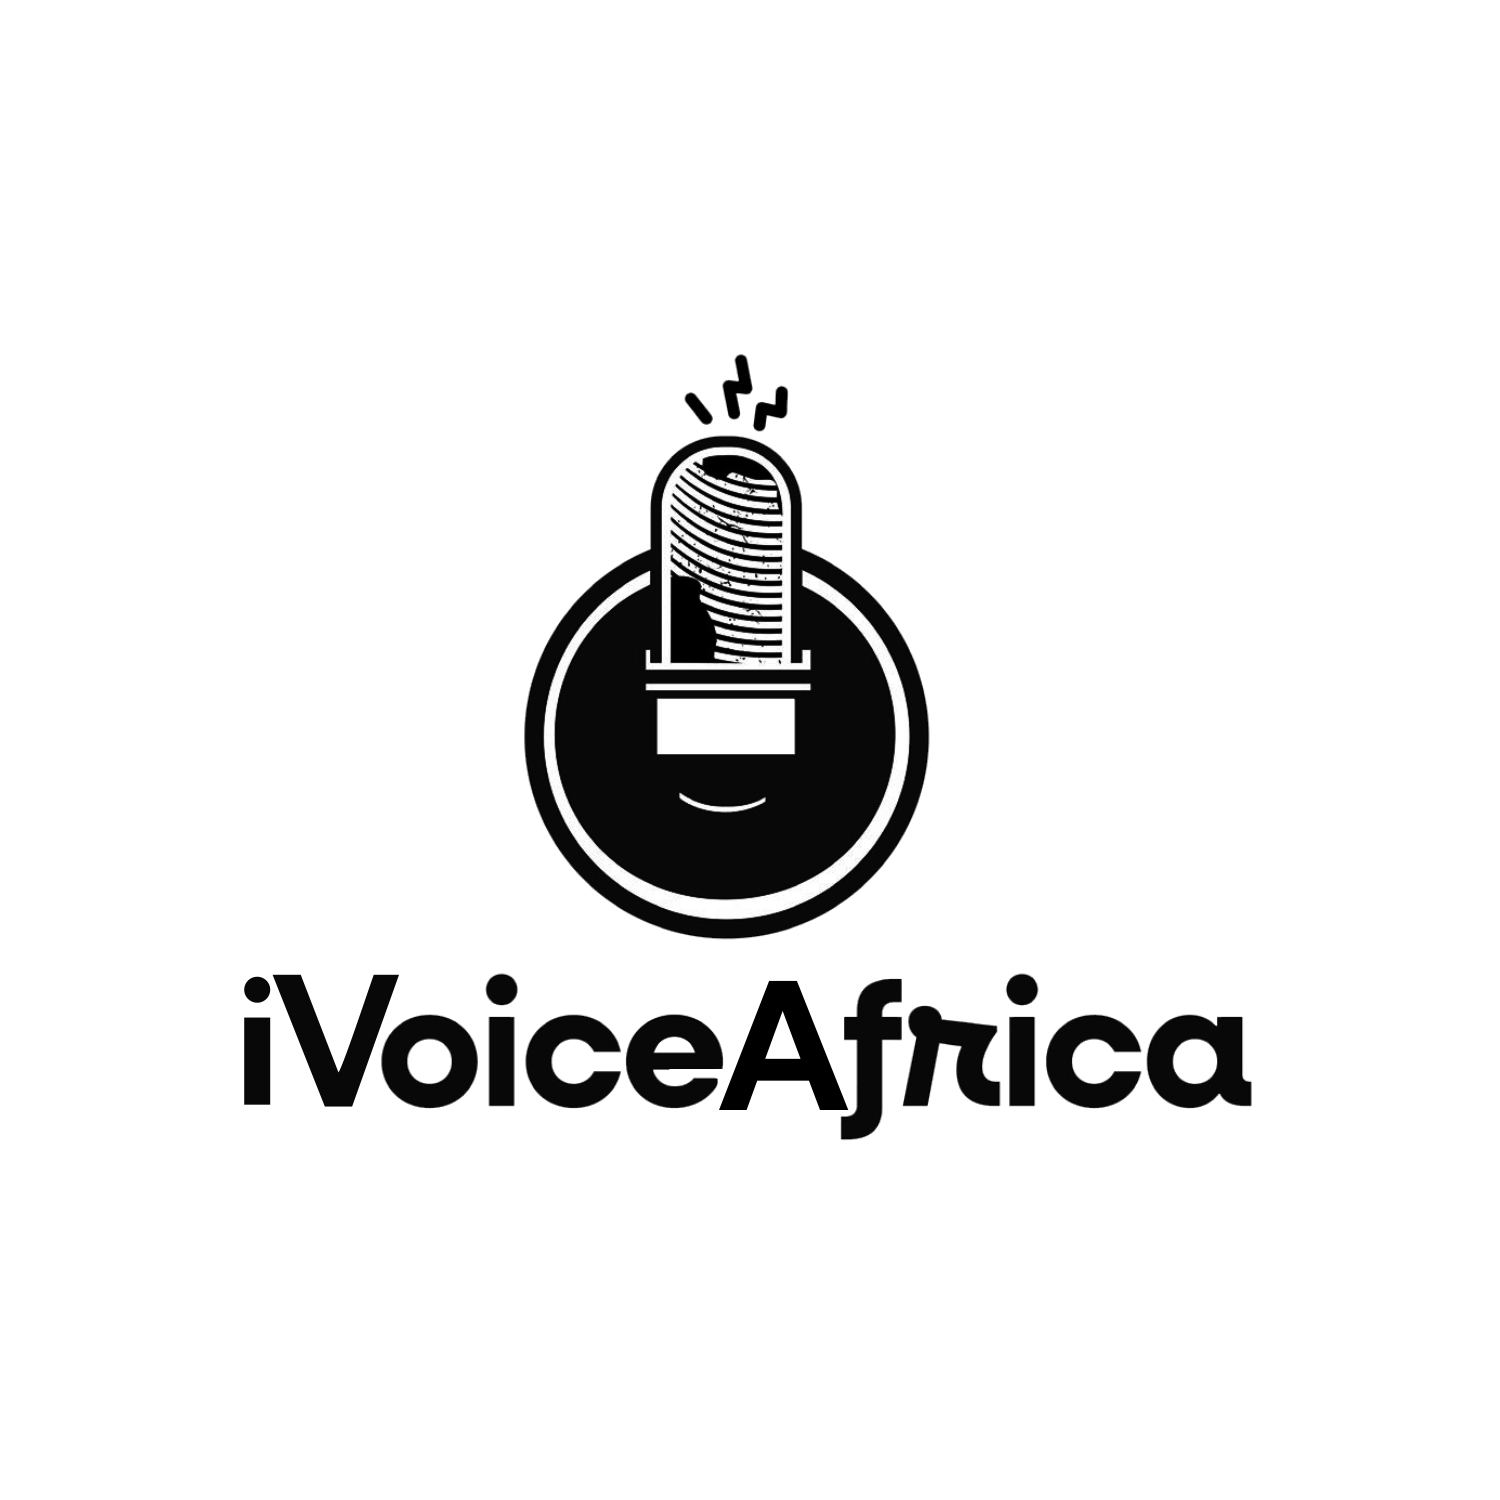 Re-introducing iVoiceAfrica – 2Years Down the Line